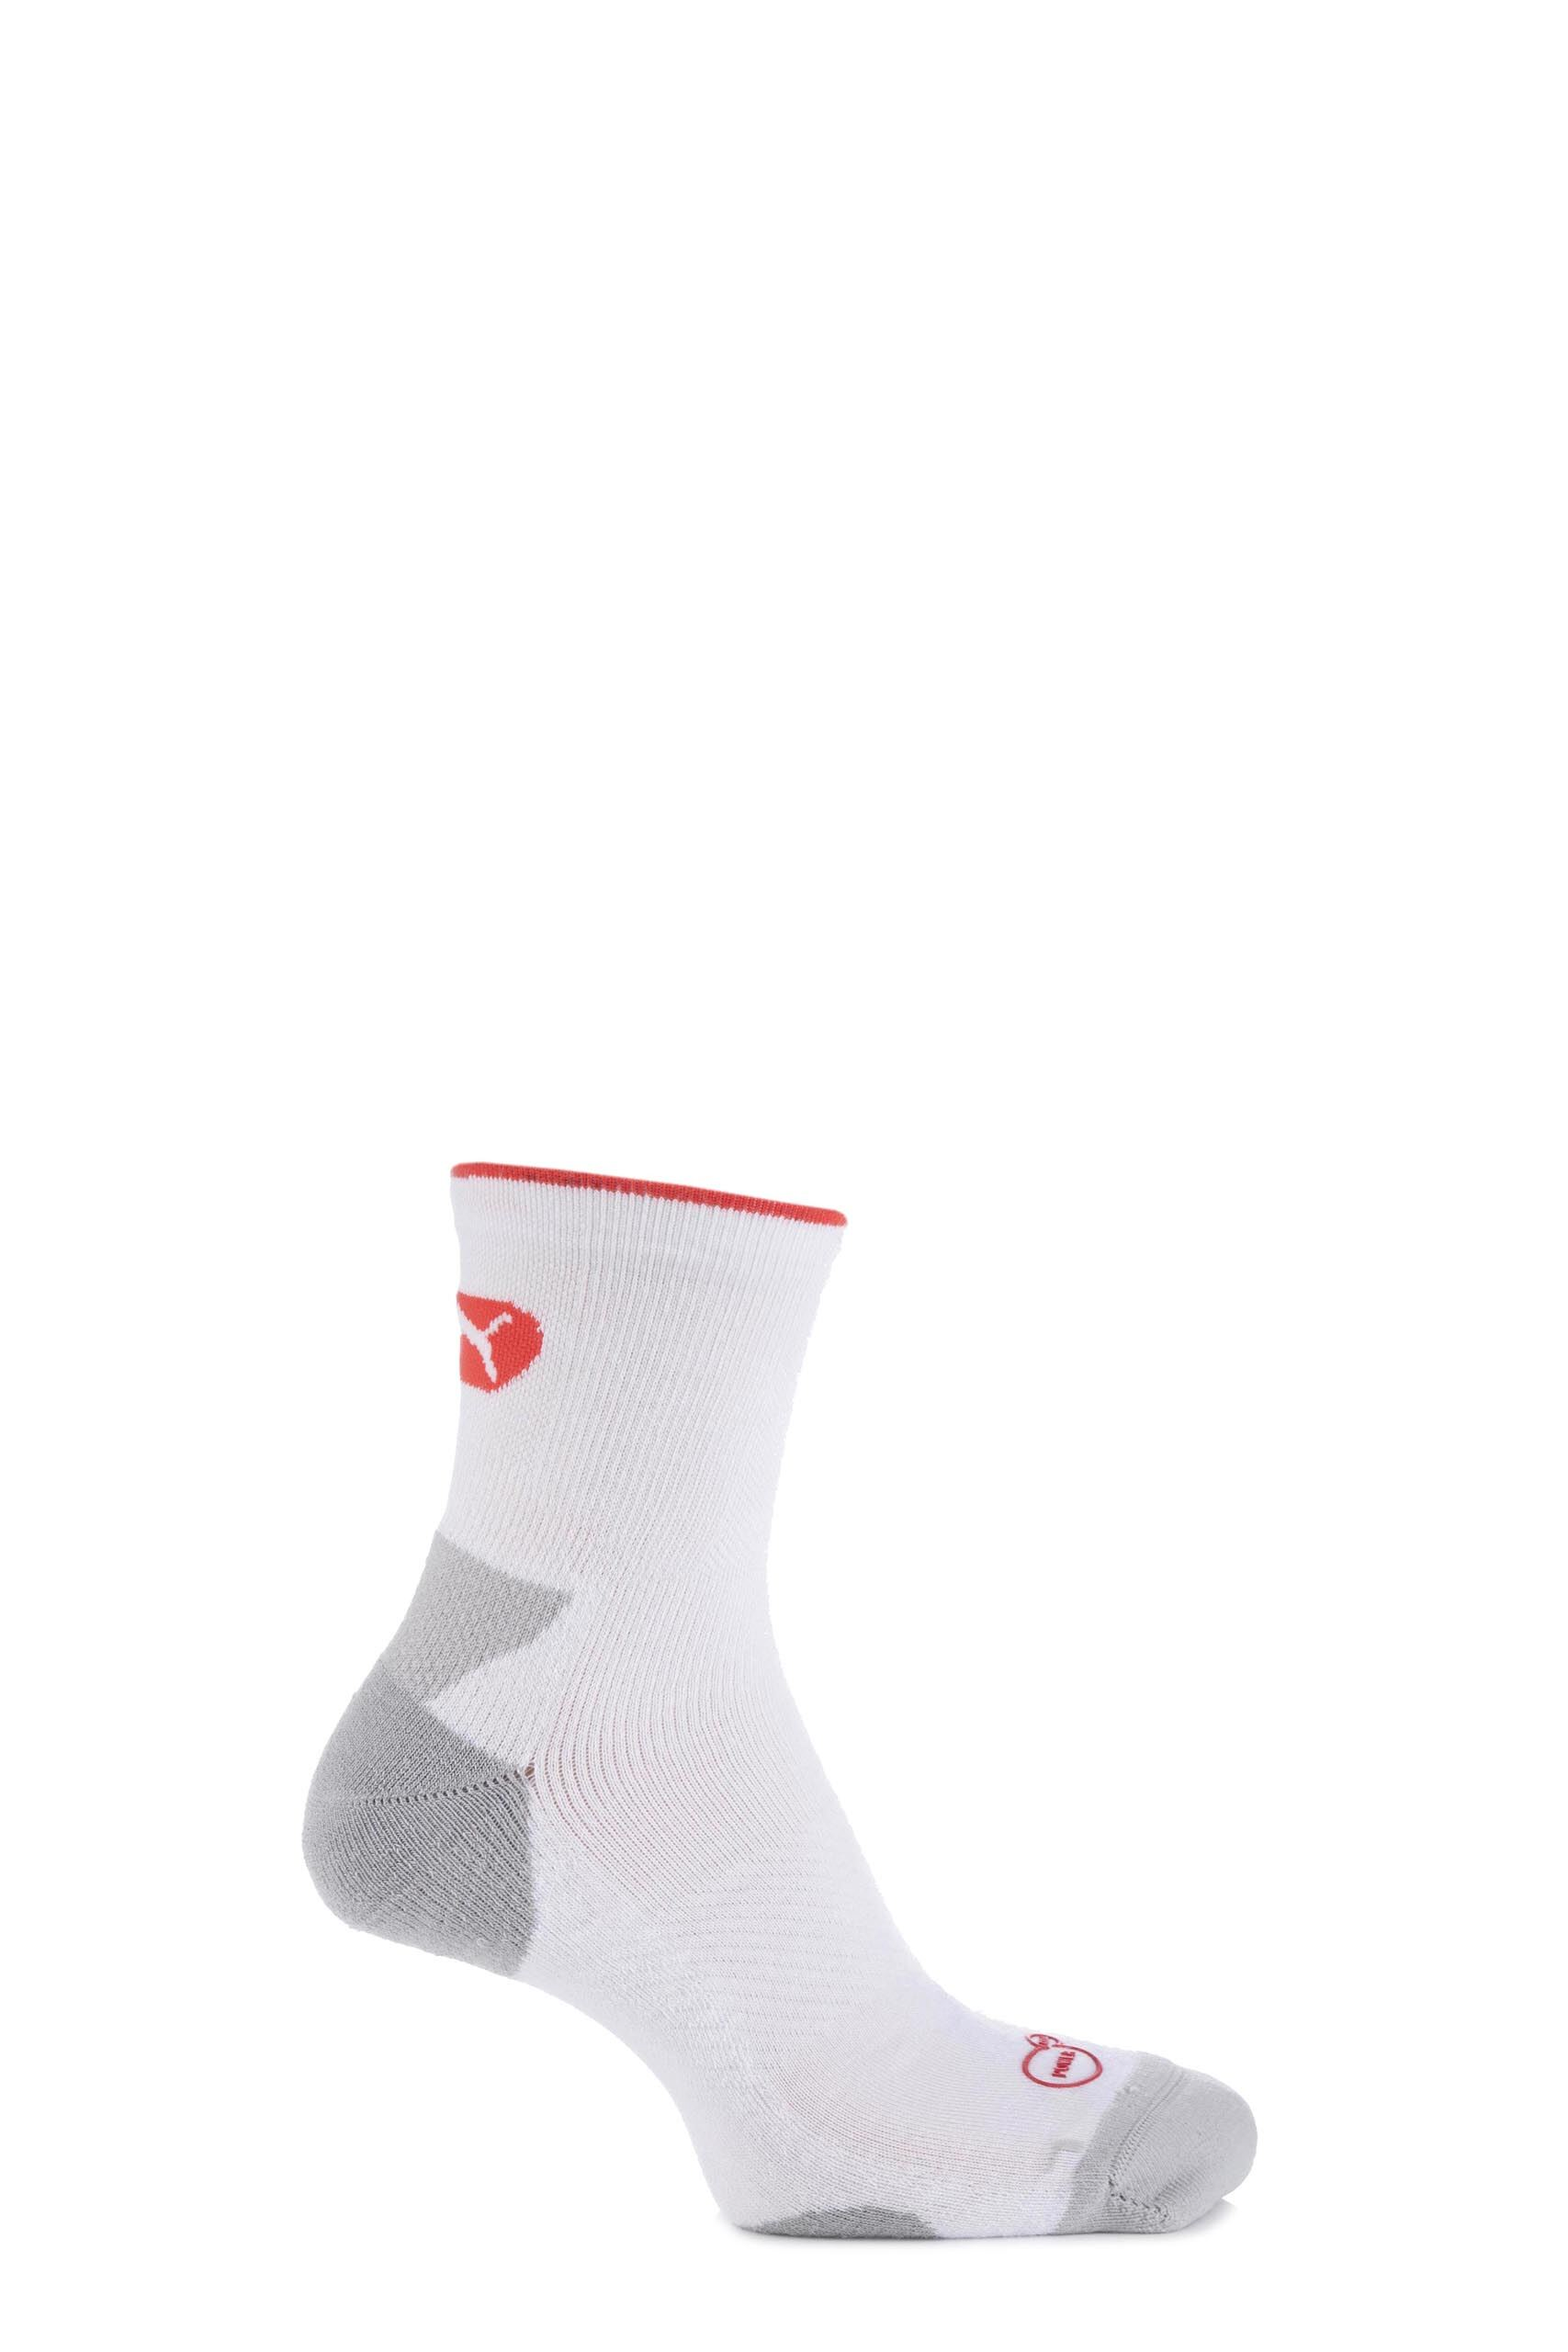 Image of 1 Pair White PowerCELL Performance and Mid-Weight Crew Training Socks Unisex 2.5-5 Unisex - Puma